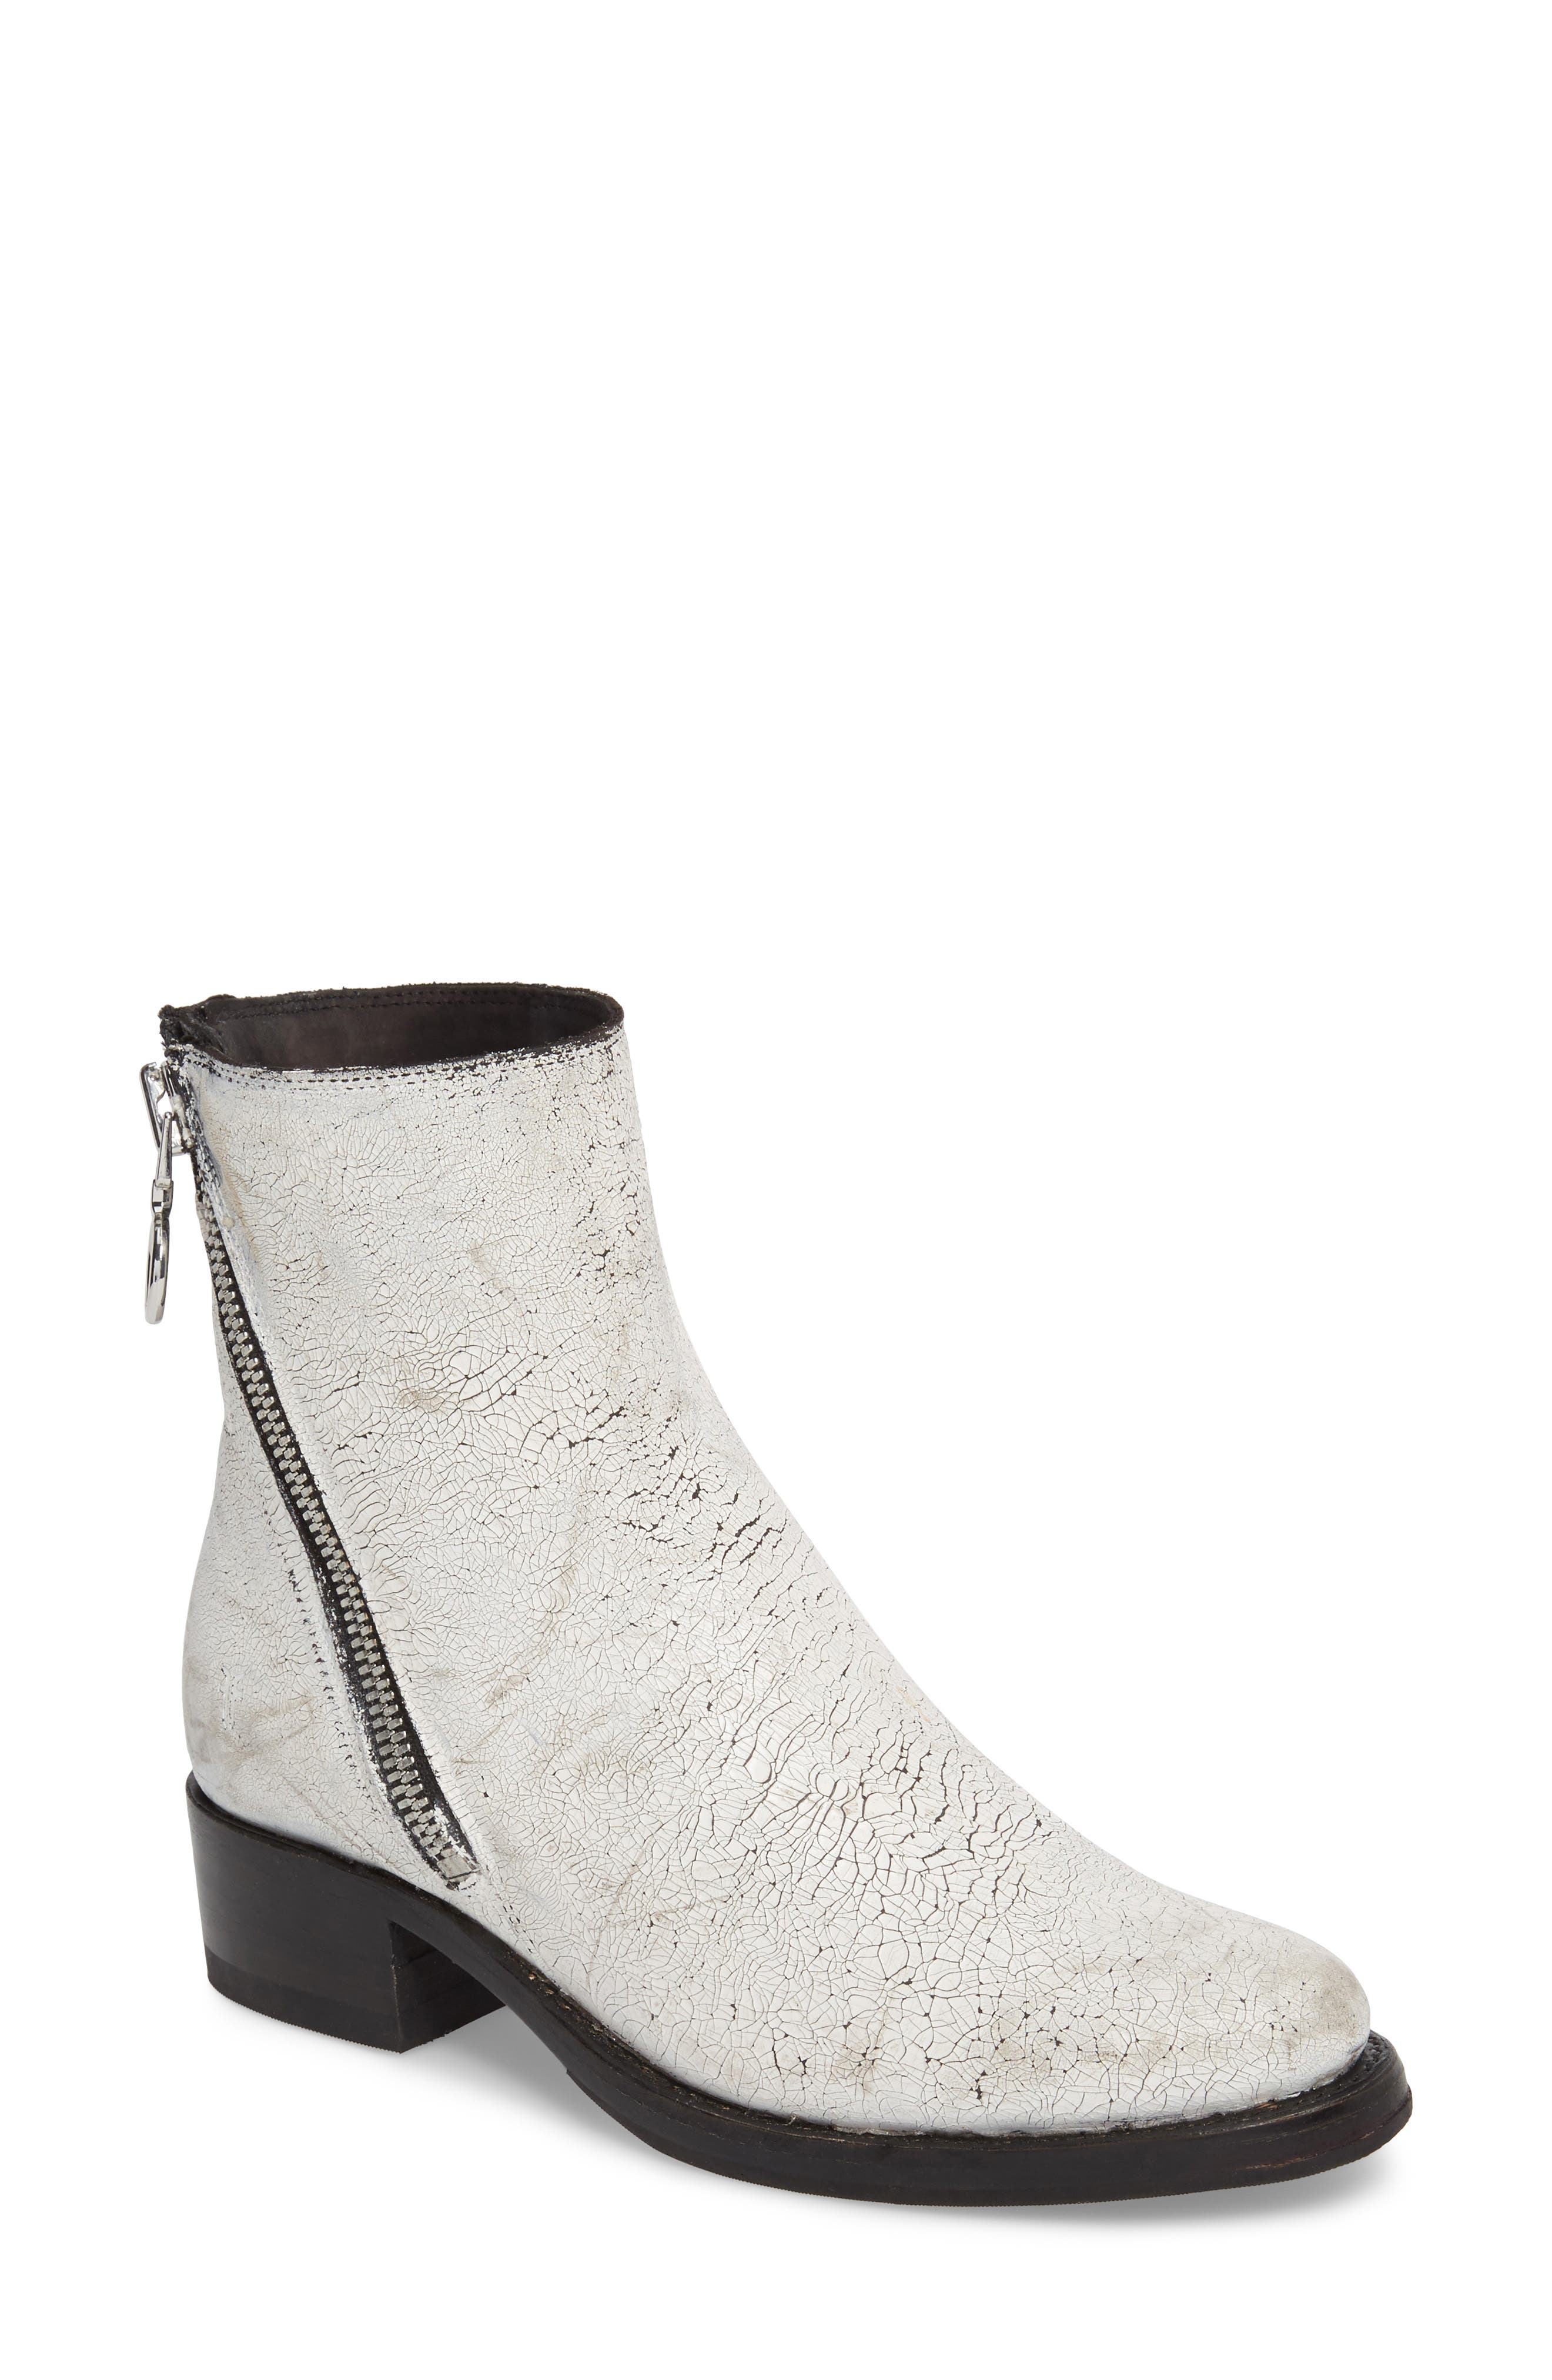 Alternate Image 1 Selected - Frye Demi Zip Bootie (Women)